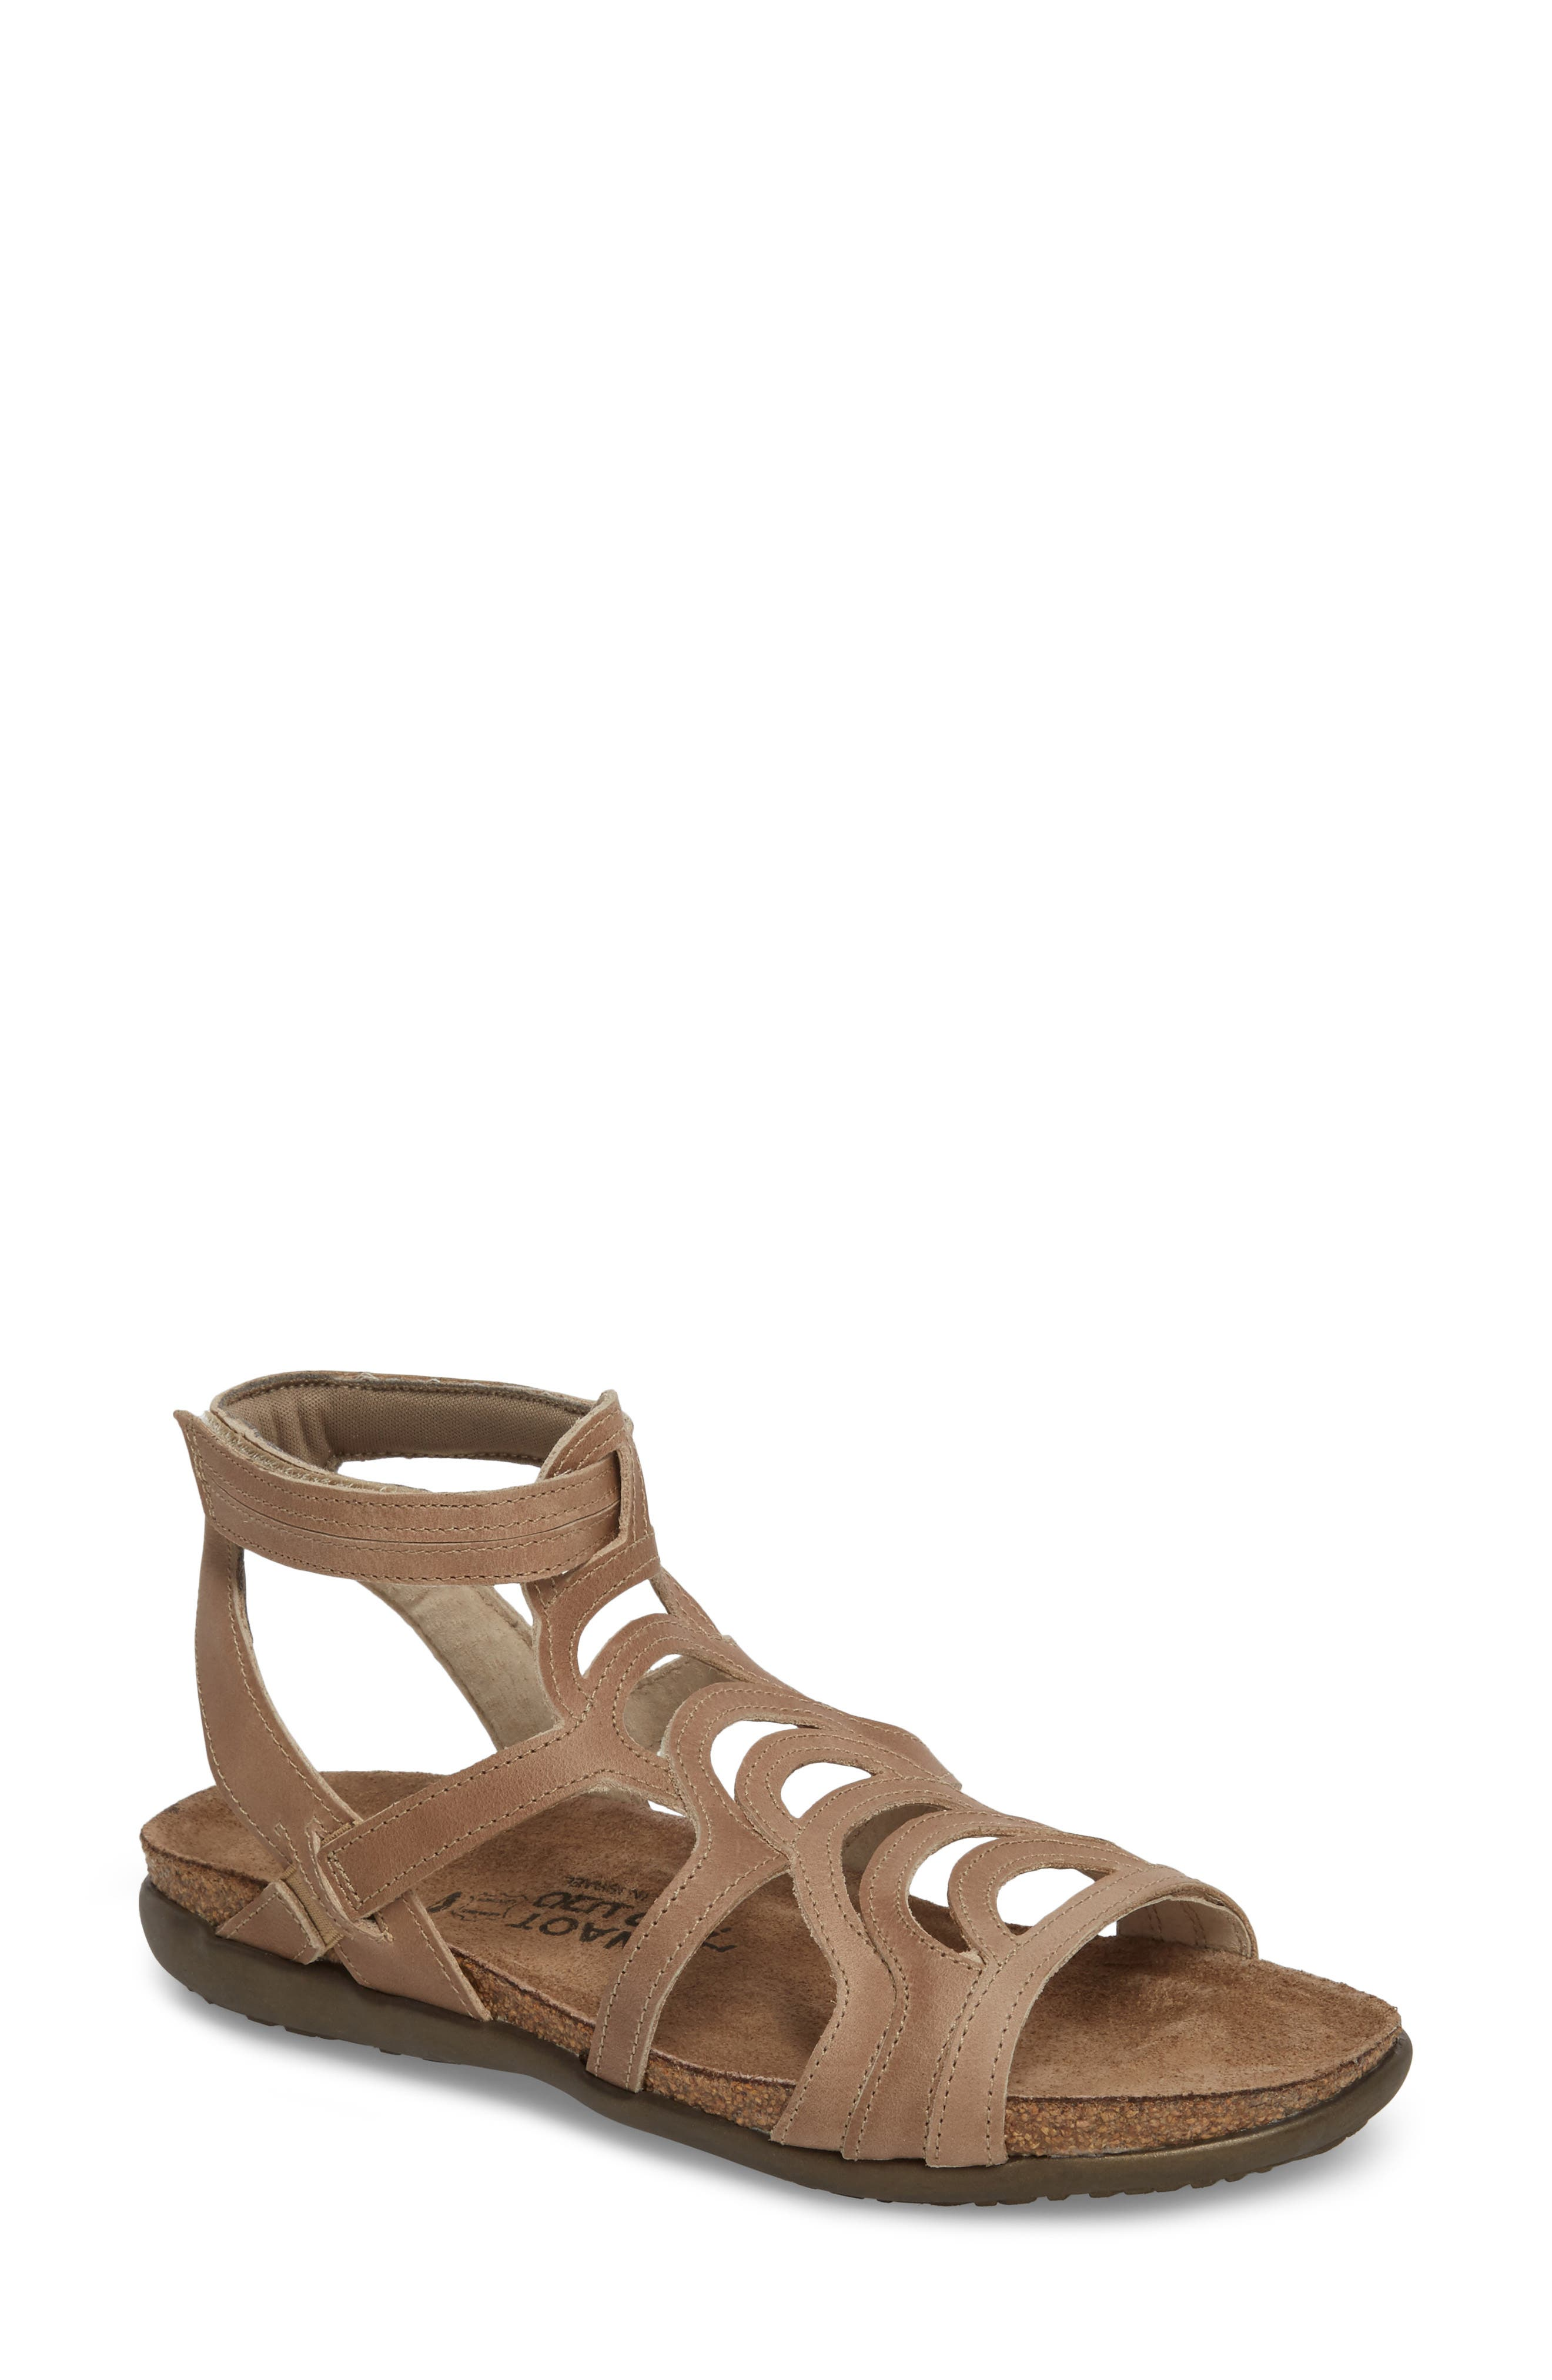 'Sara' Gladiator Sandal,                         Main,                         color, KHAKI BEIGE LEATHER